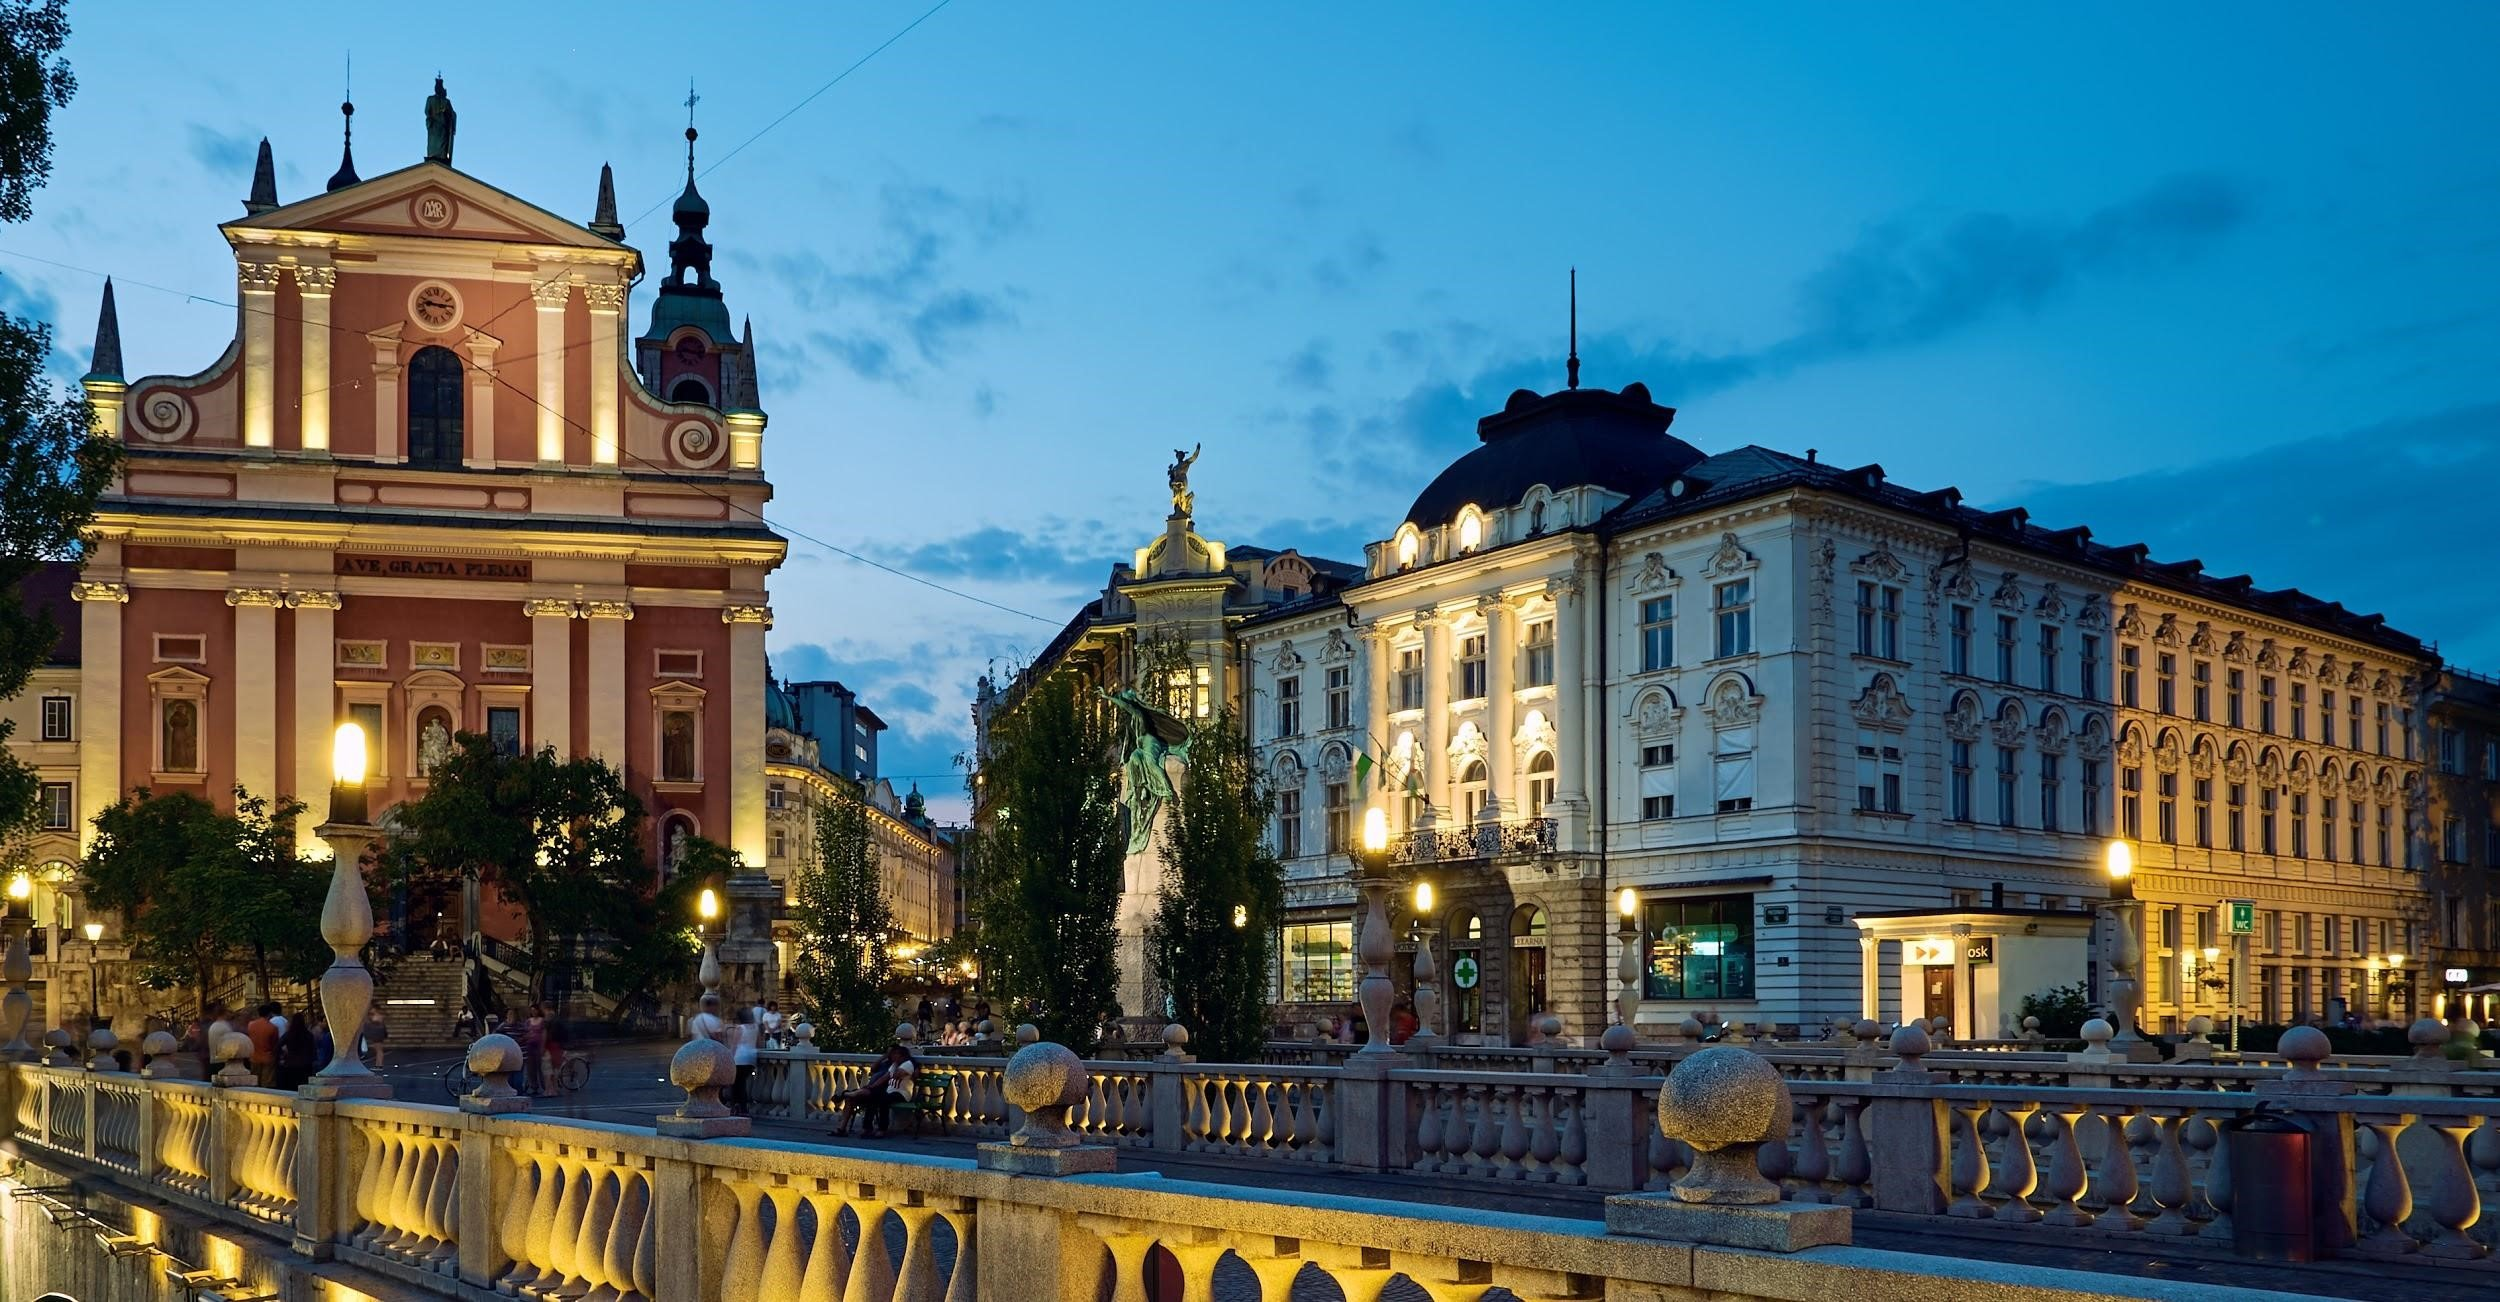 Ljbuljana is not close to Vienna, but worth a day trip if you have time.